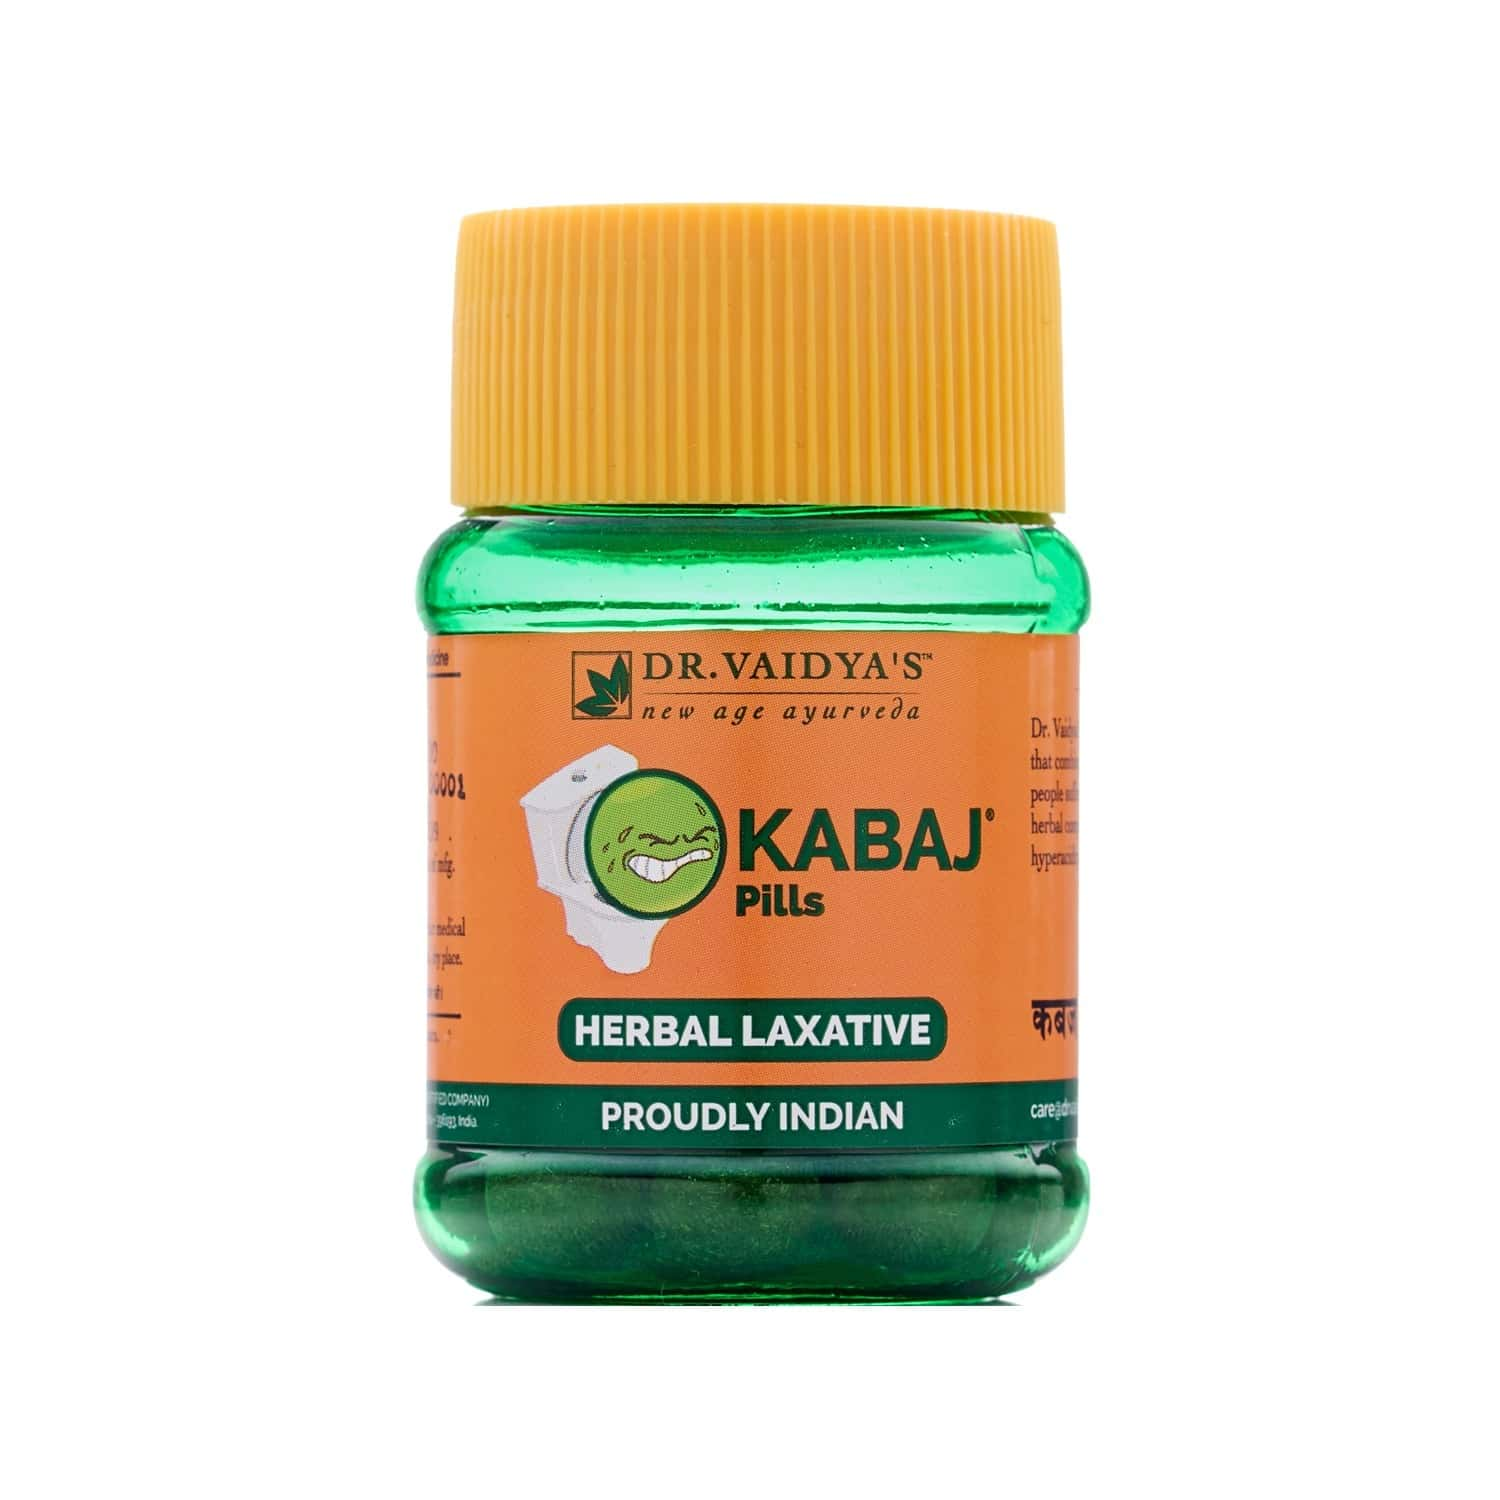 Kabaj Pills Relief From Constipation